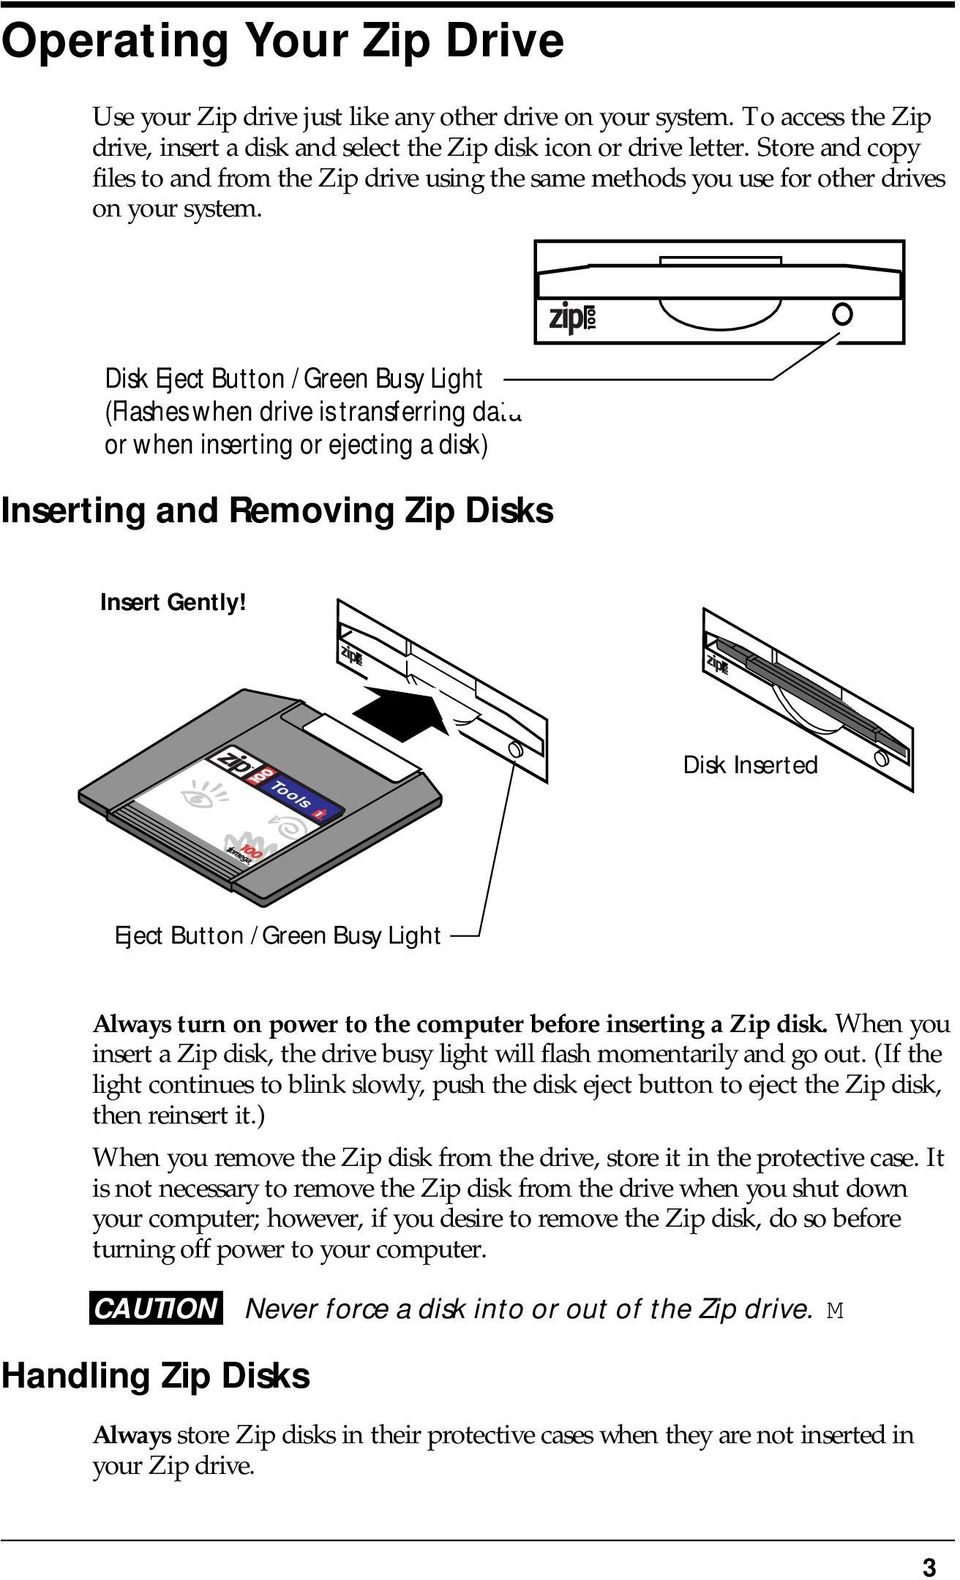 Disk Eject Button / Green Busy Light (Flashes when drive is transferring data or when inserting or ejecting a disk) Inserting and Removing Zip Disks Insert Gently!